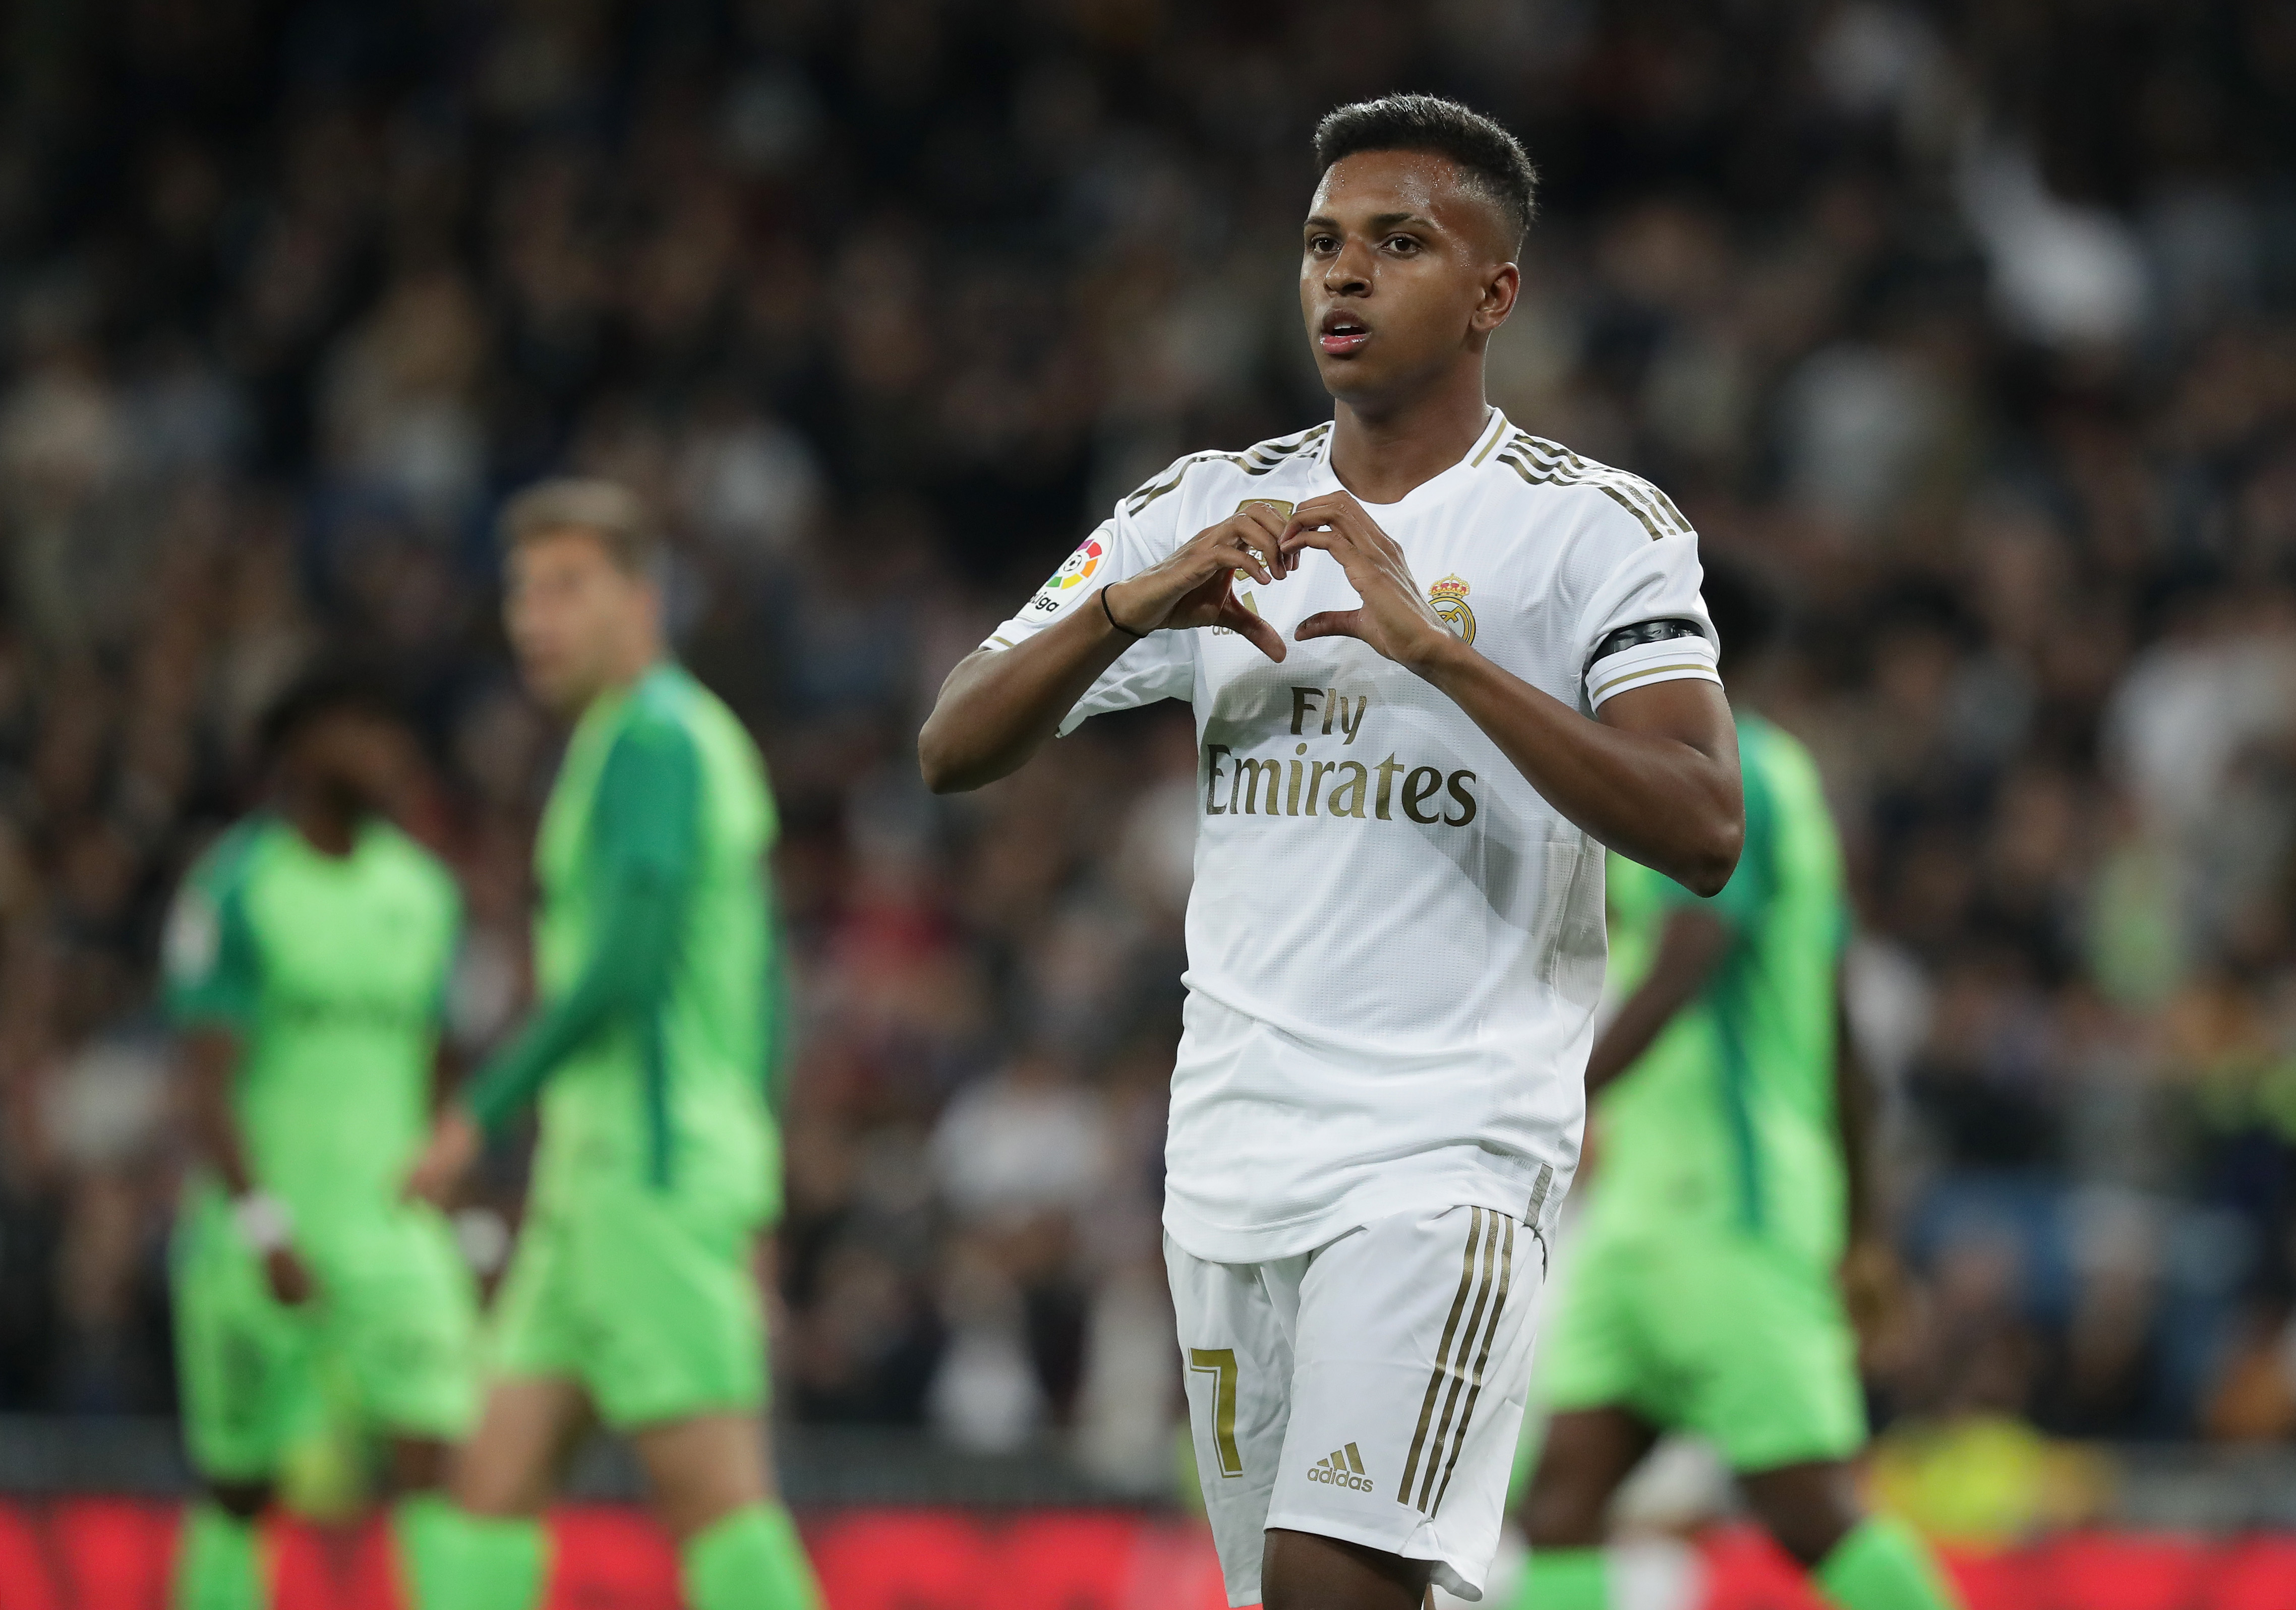 Rodrygo has been rewarded for his fine form at Real Madrid with an international call-up (Photo by Gonzalo Arroyo Moreno/Getty Images)